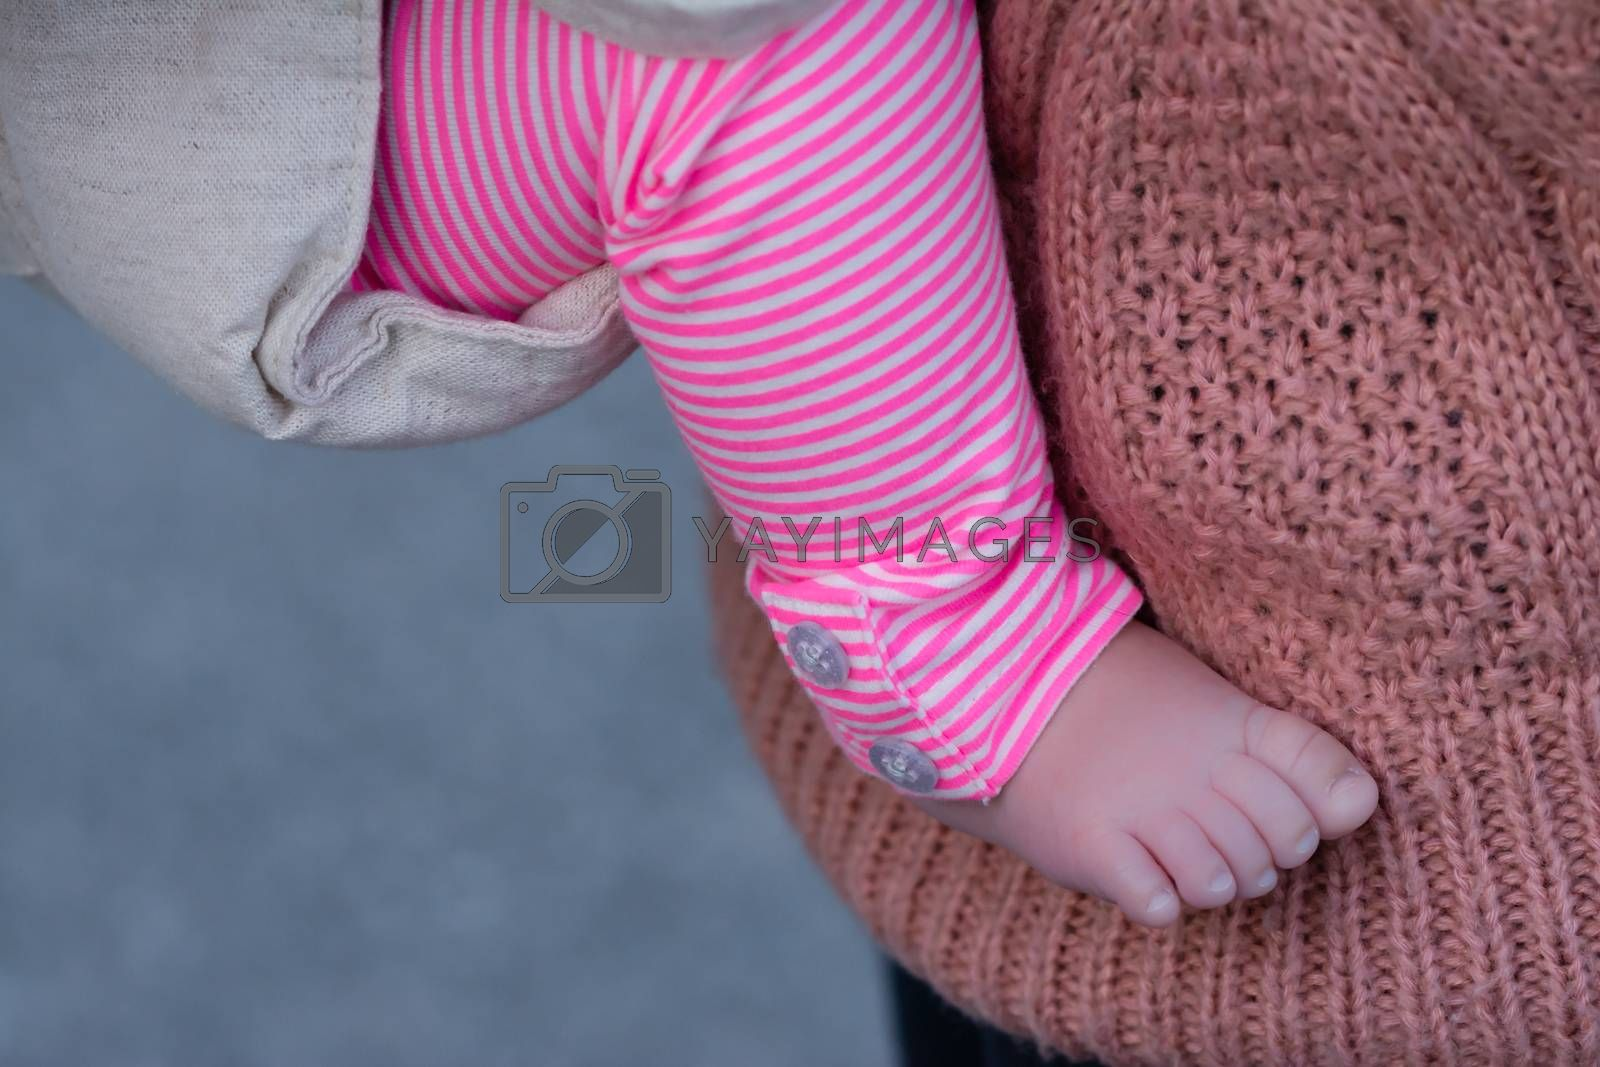 The foot and leg of a baby girl being carried by her mother, both wearing pink.